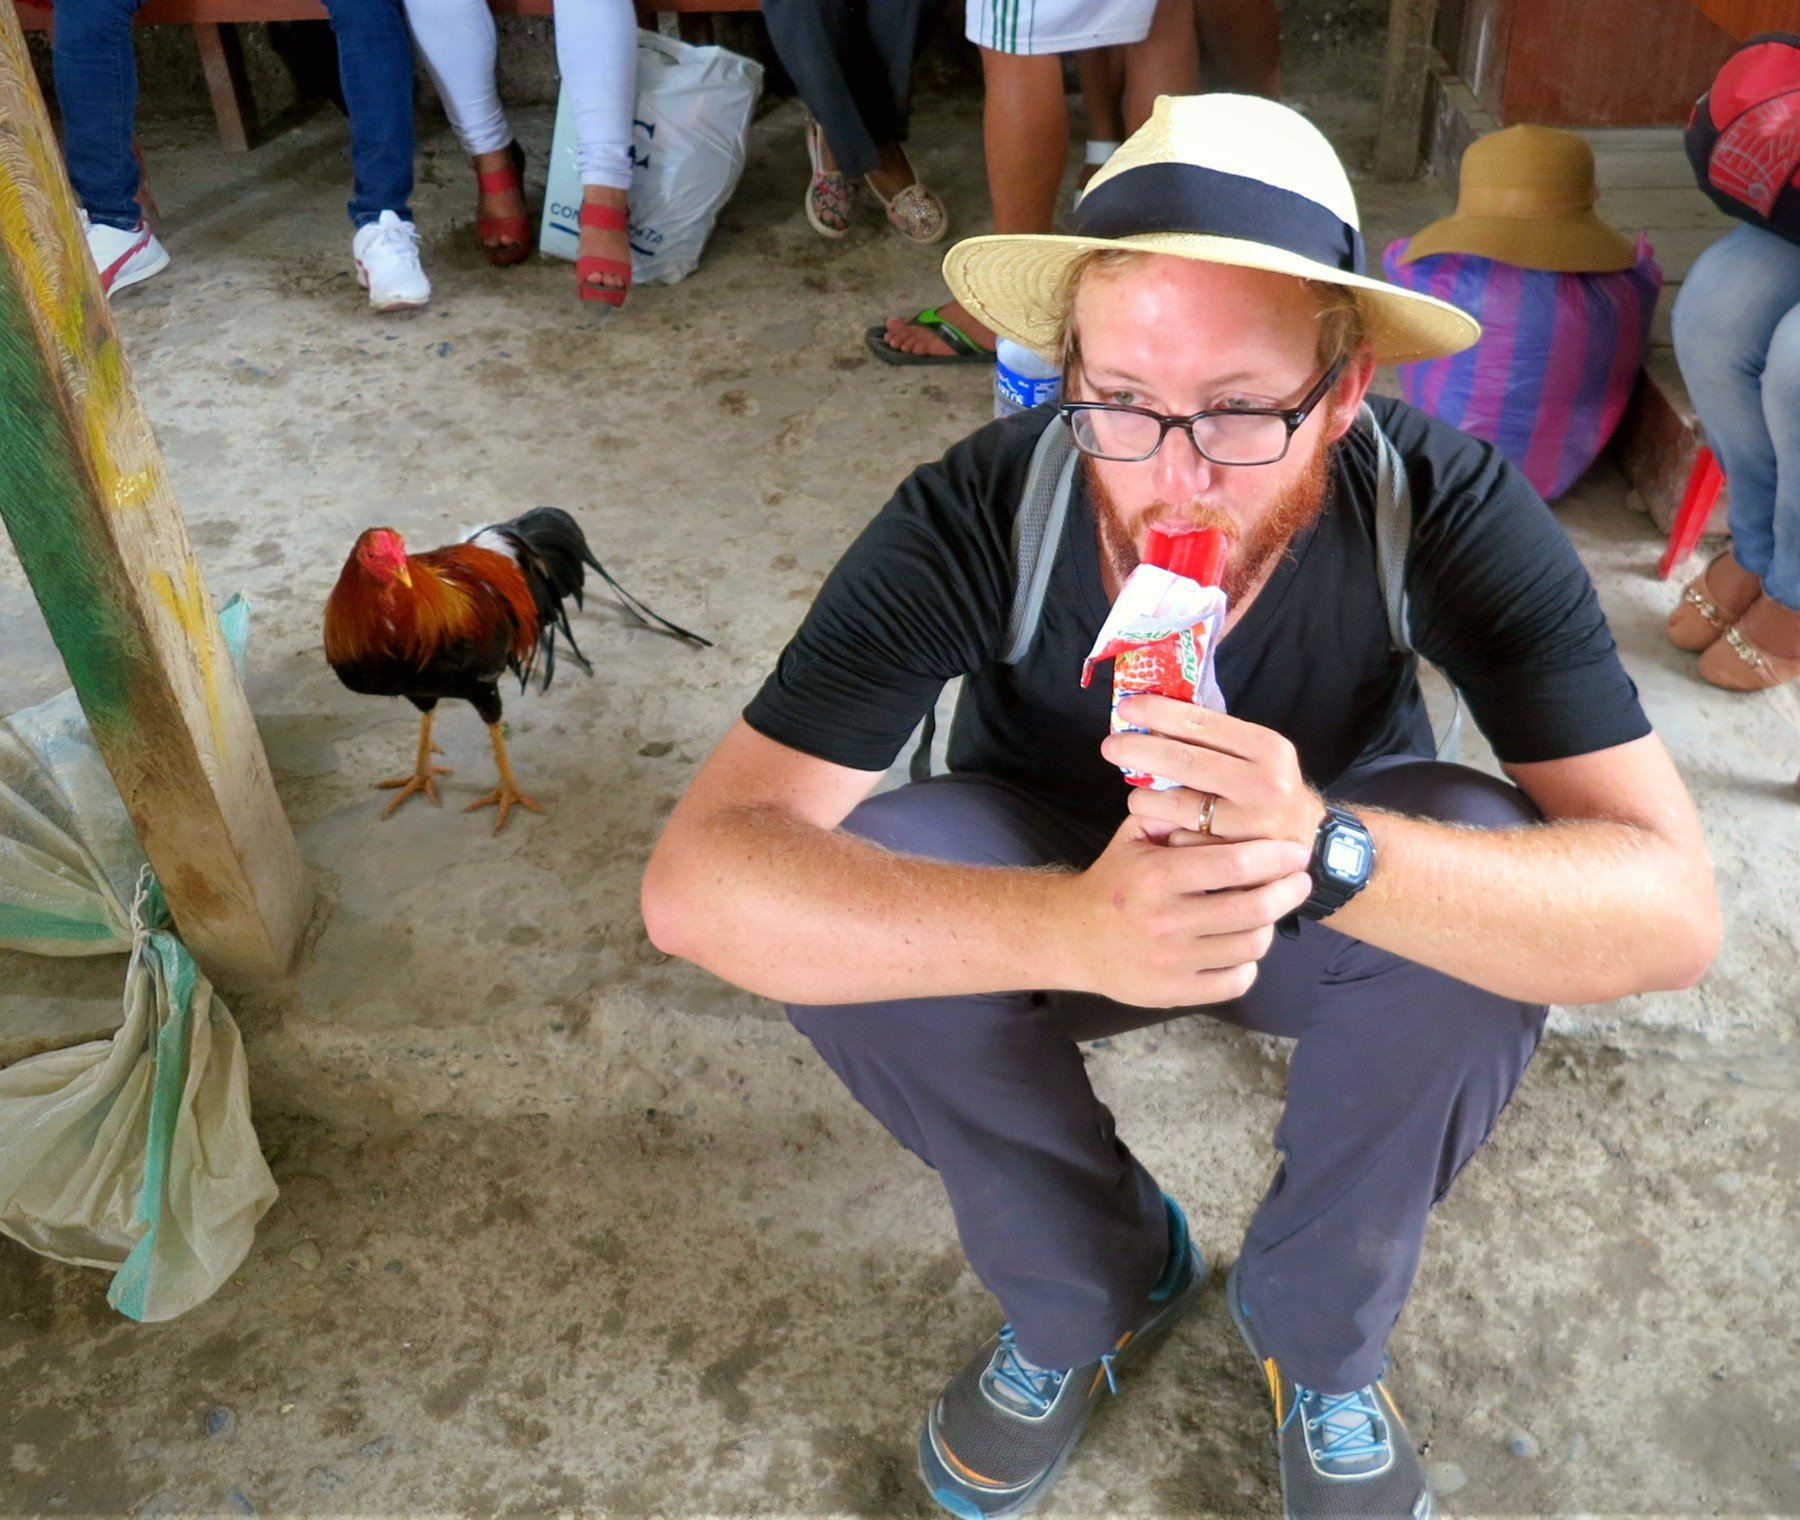 Our rooster friend and fellow passenger on the La Balsa Border Crossing from Ecuador to Peru.